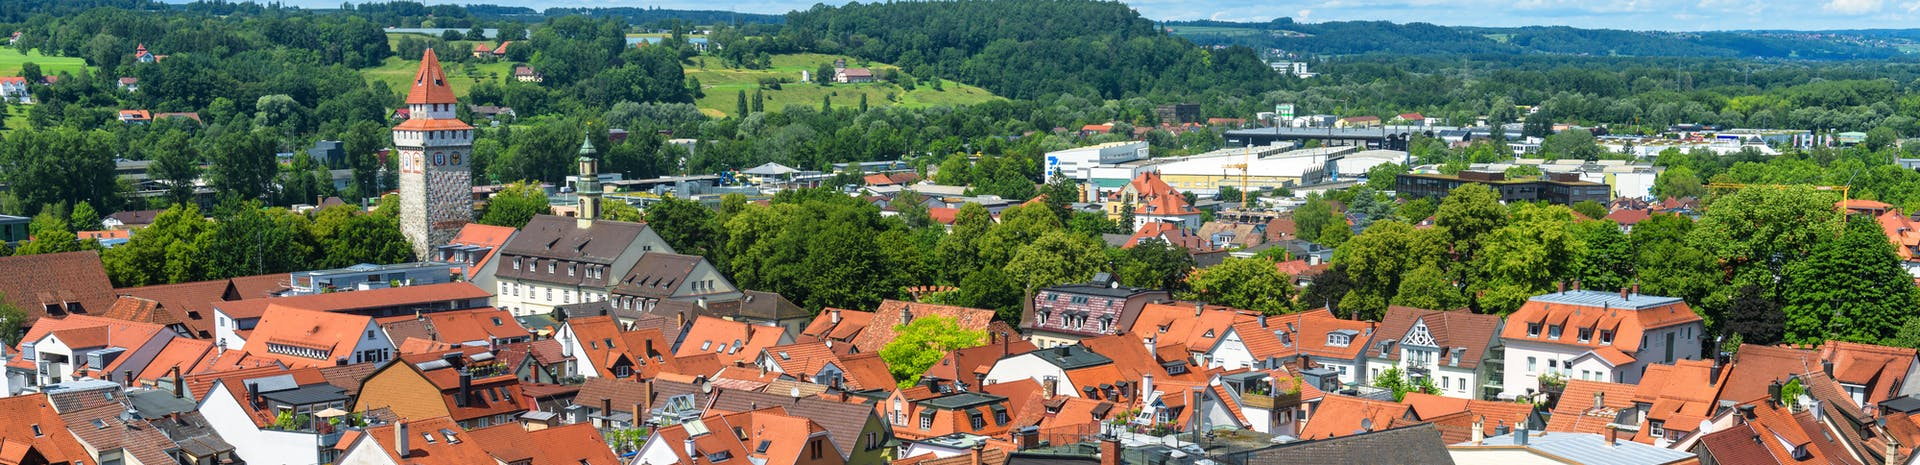 Picture of Ravensburg